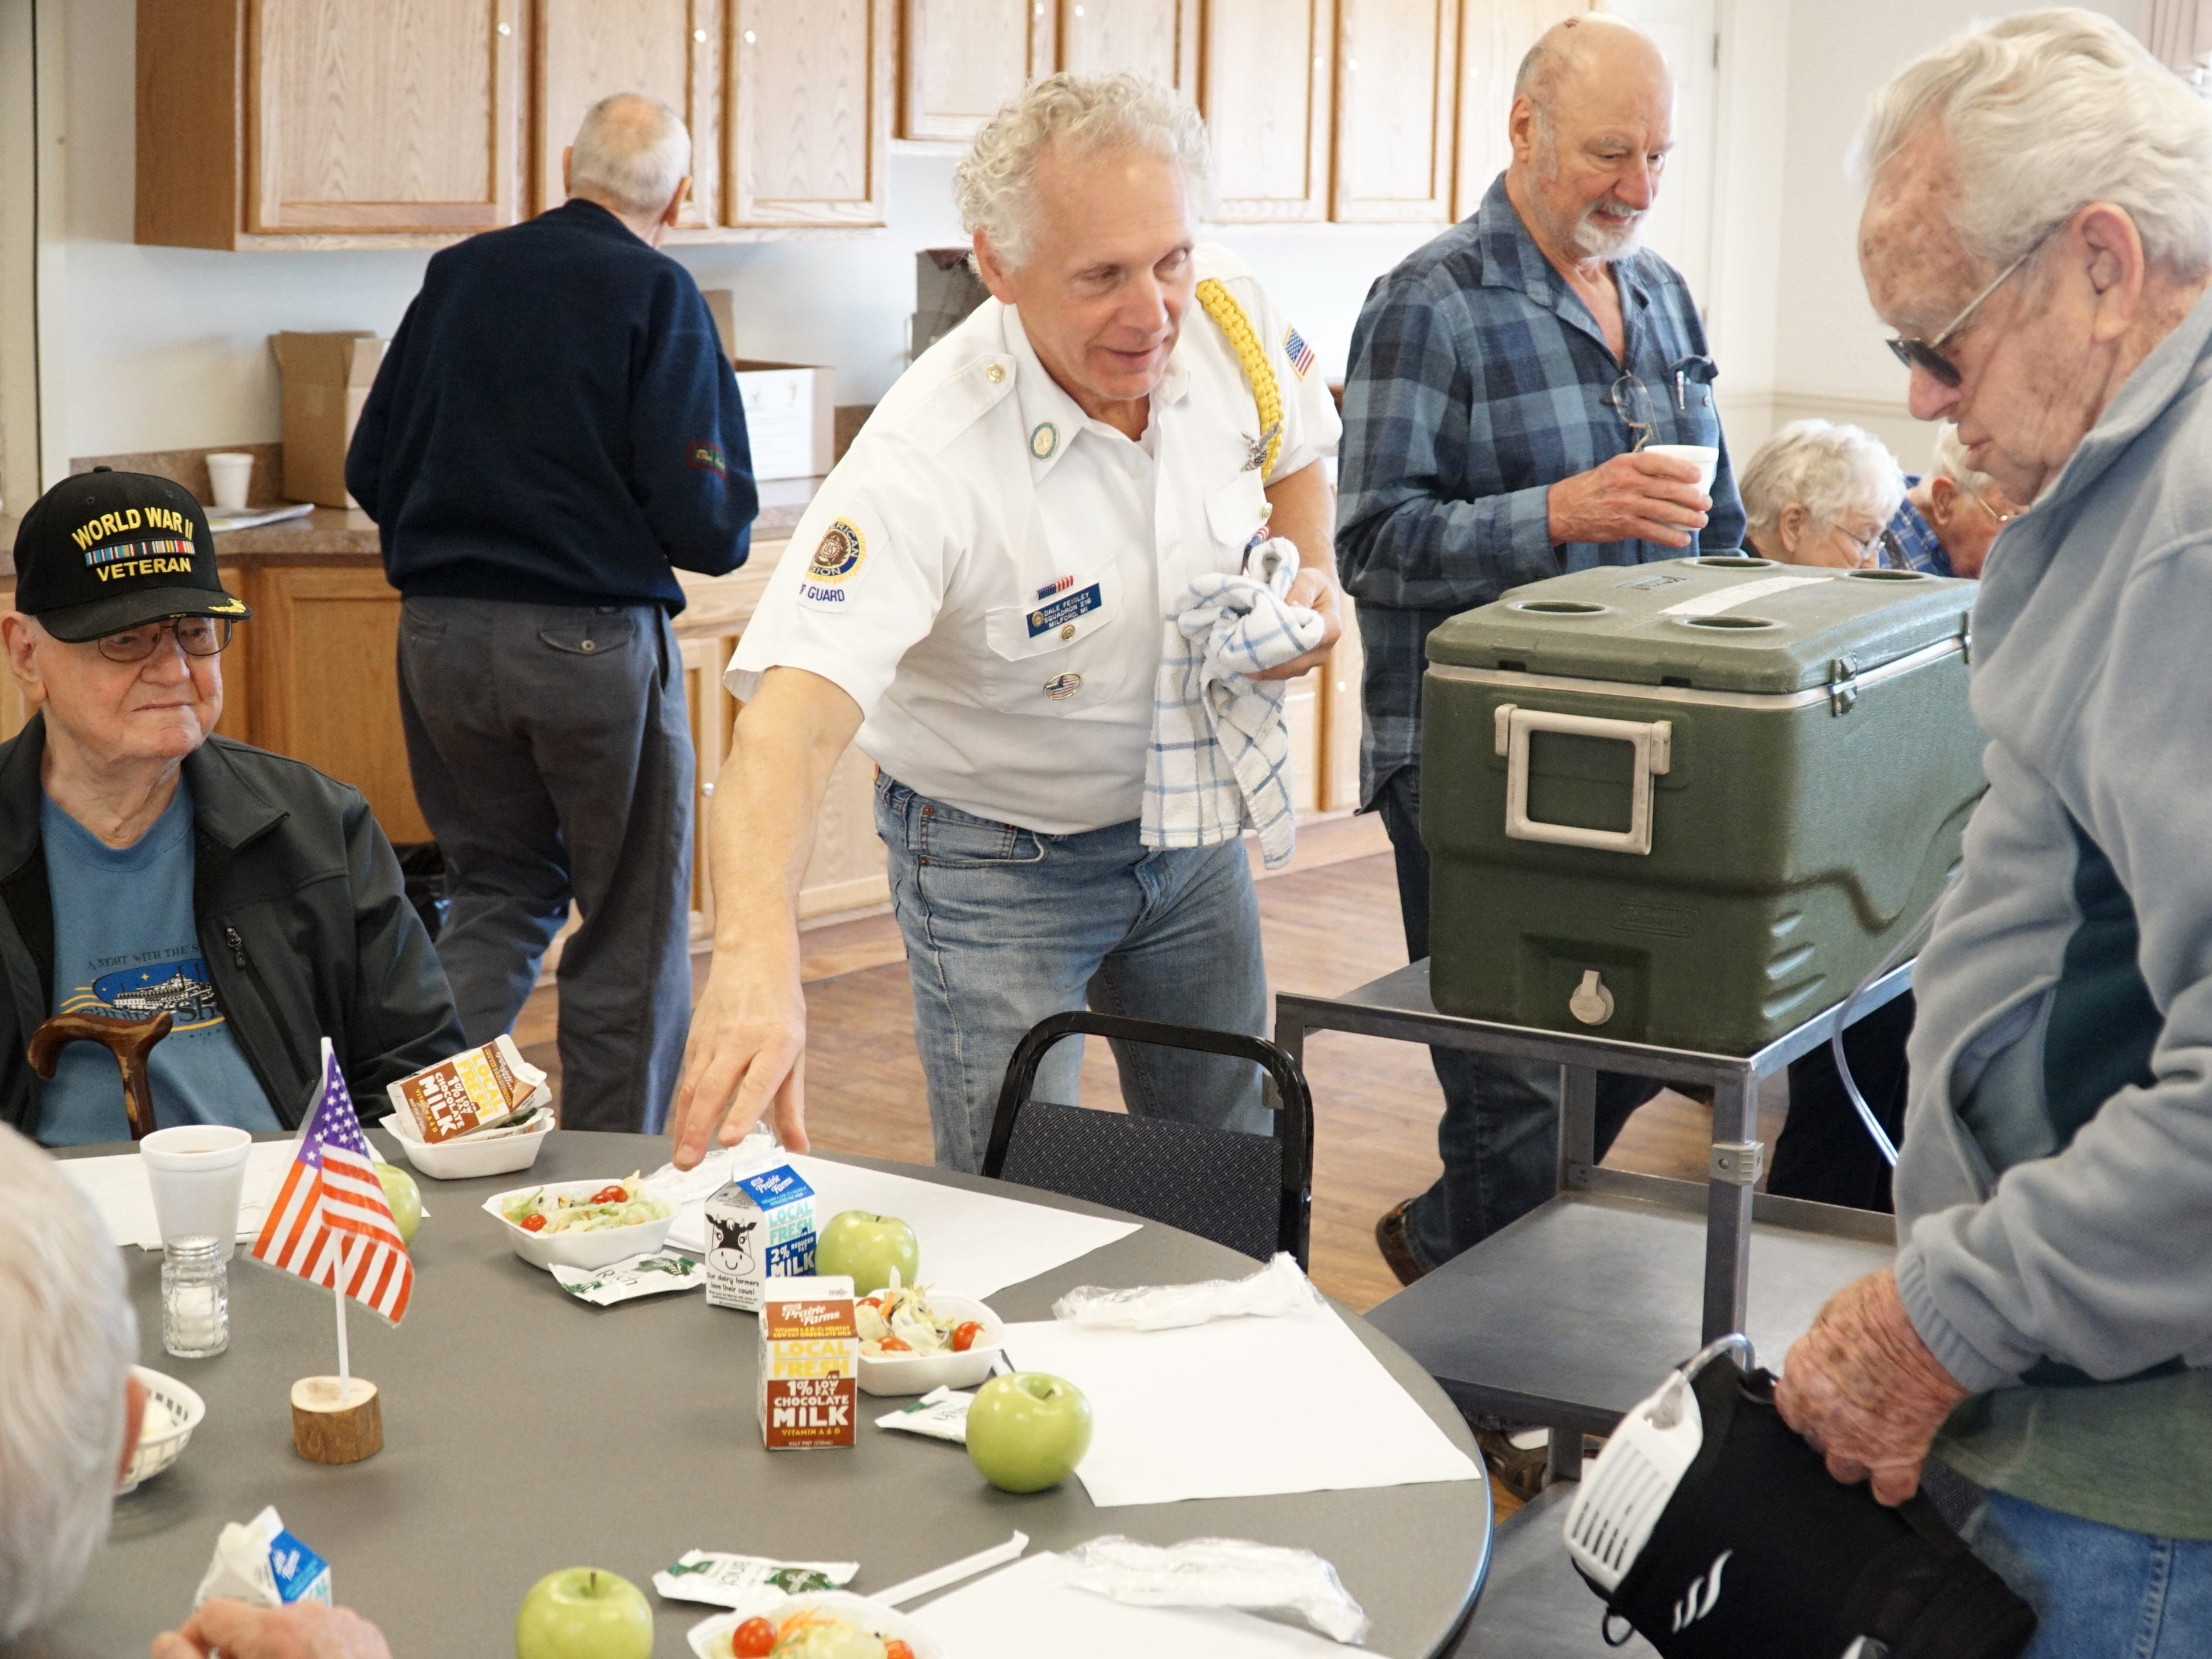 Dale Feigley, center, volunteers at the March 18 Veterans' Lunch at the Miford Senior Center. Feigley, a member of Milford's American Legion Post 216, helps to serve veterans who show up to the center's once-a-month, third Monday in the month lunch where they can socialize and break bread together.